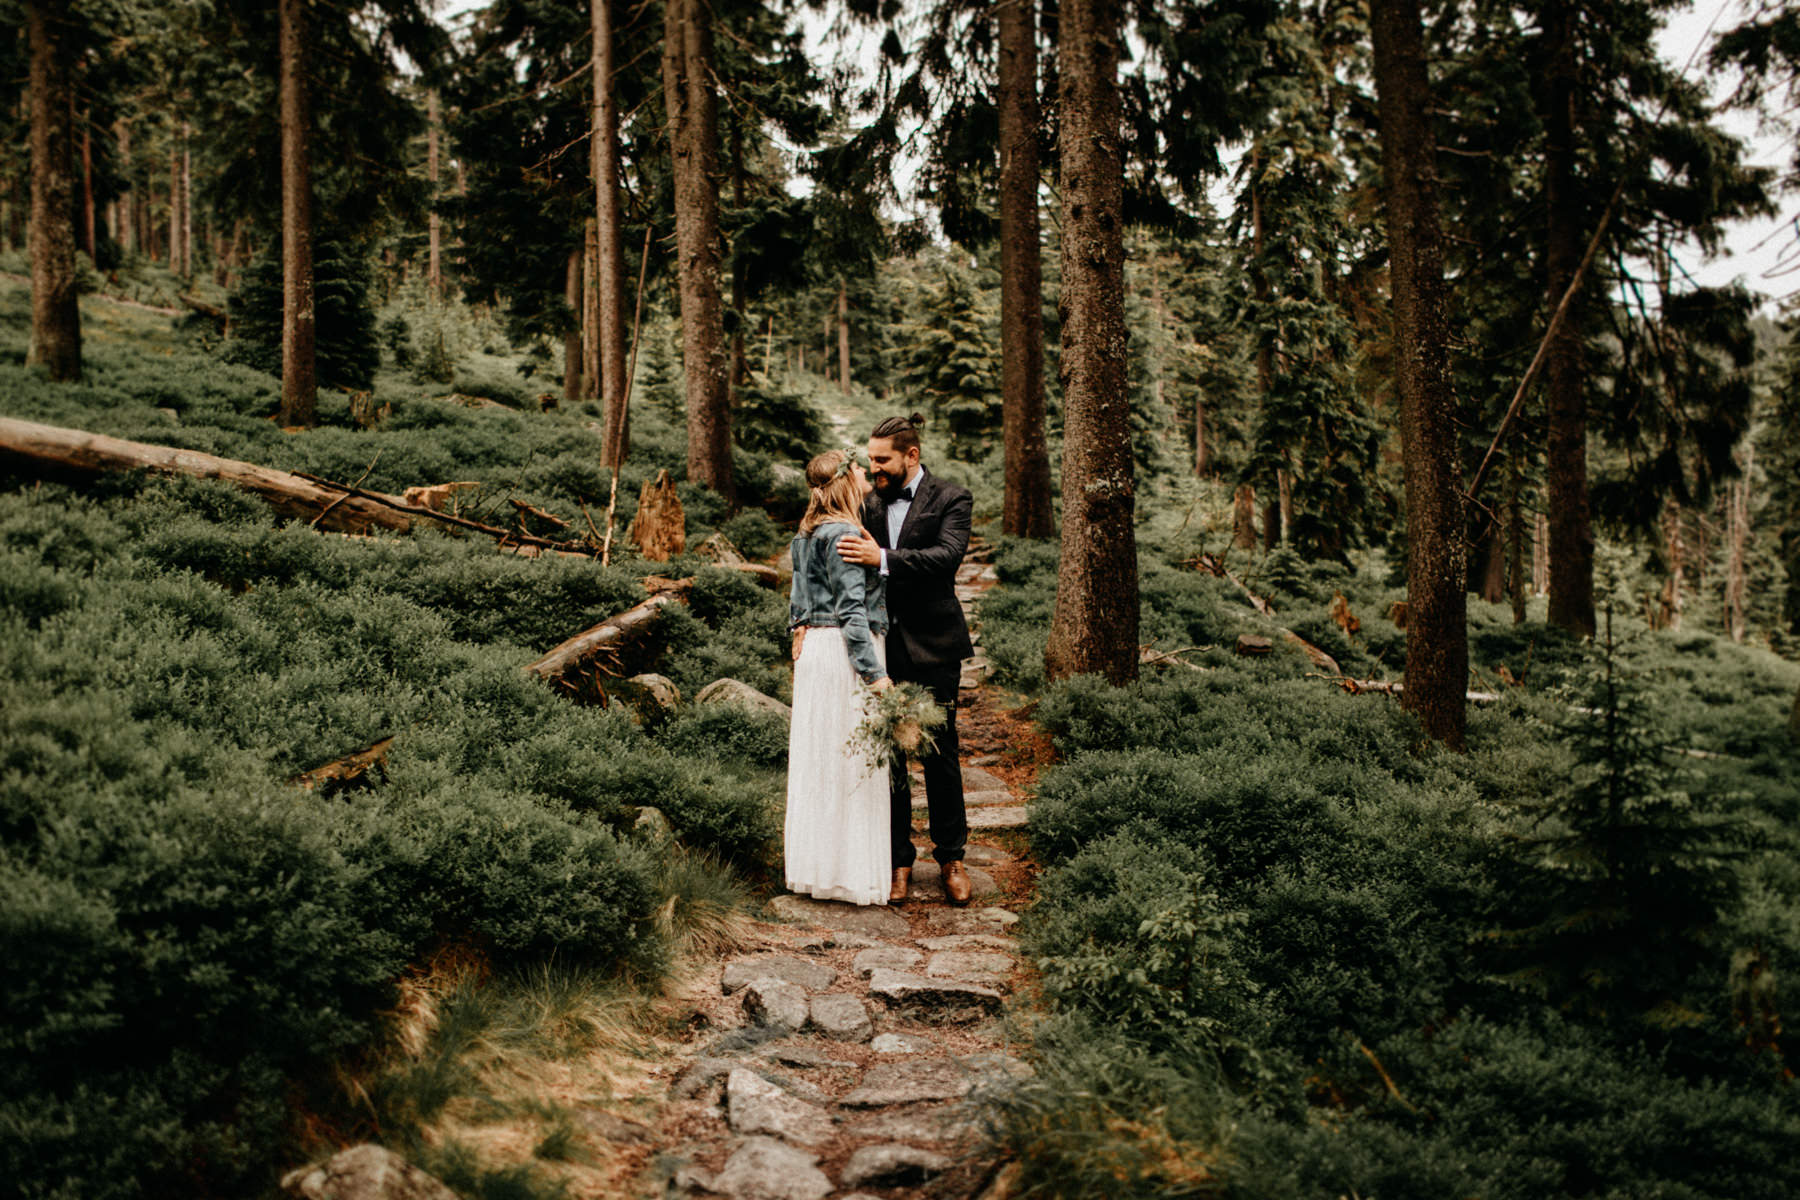 epic portrait of a hipster wedding couple in the forest